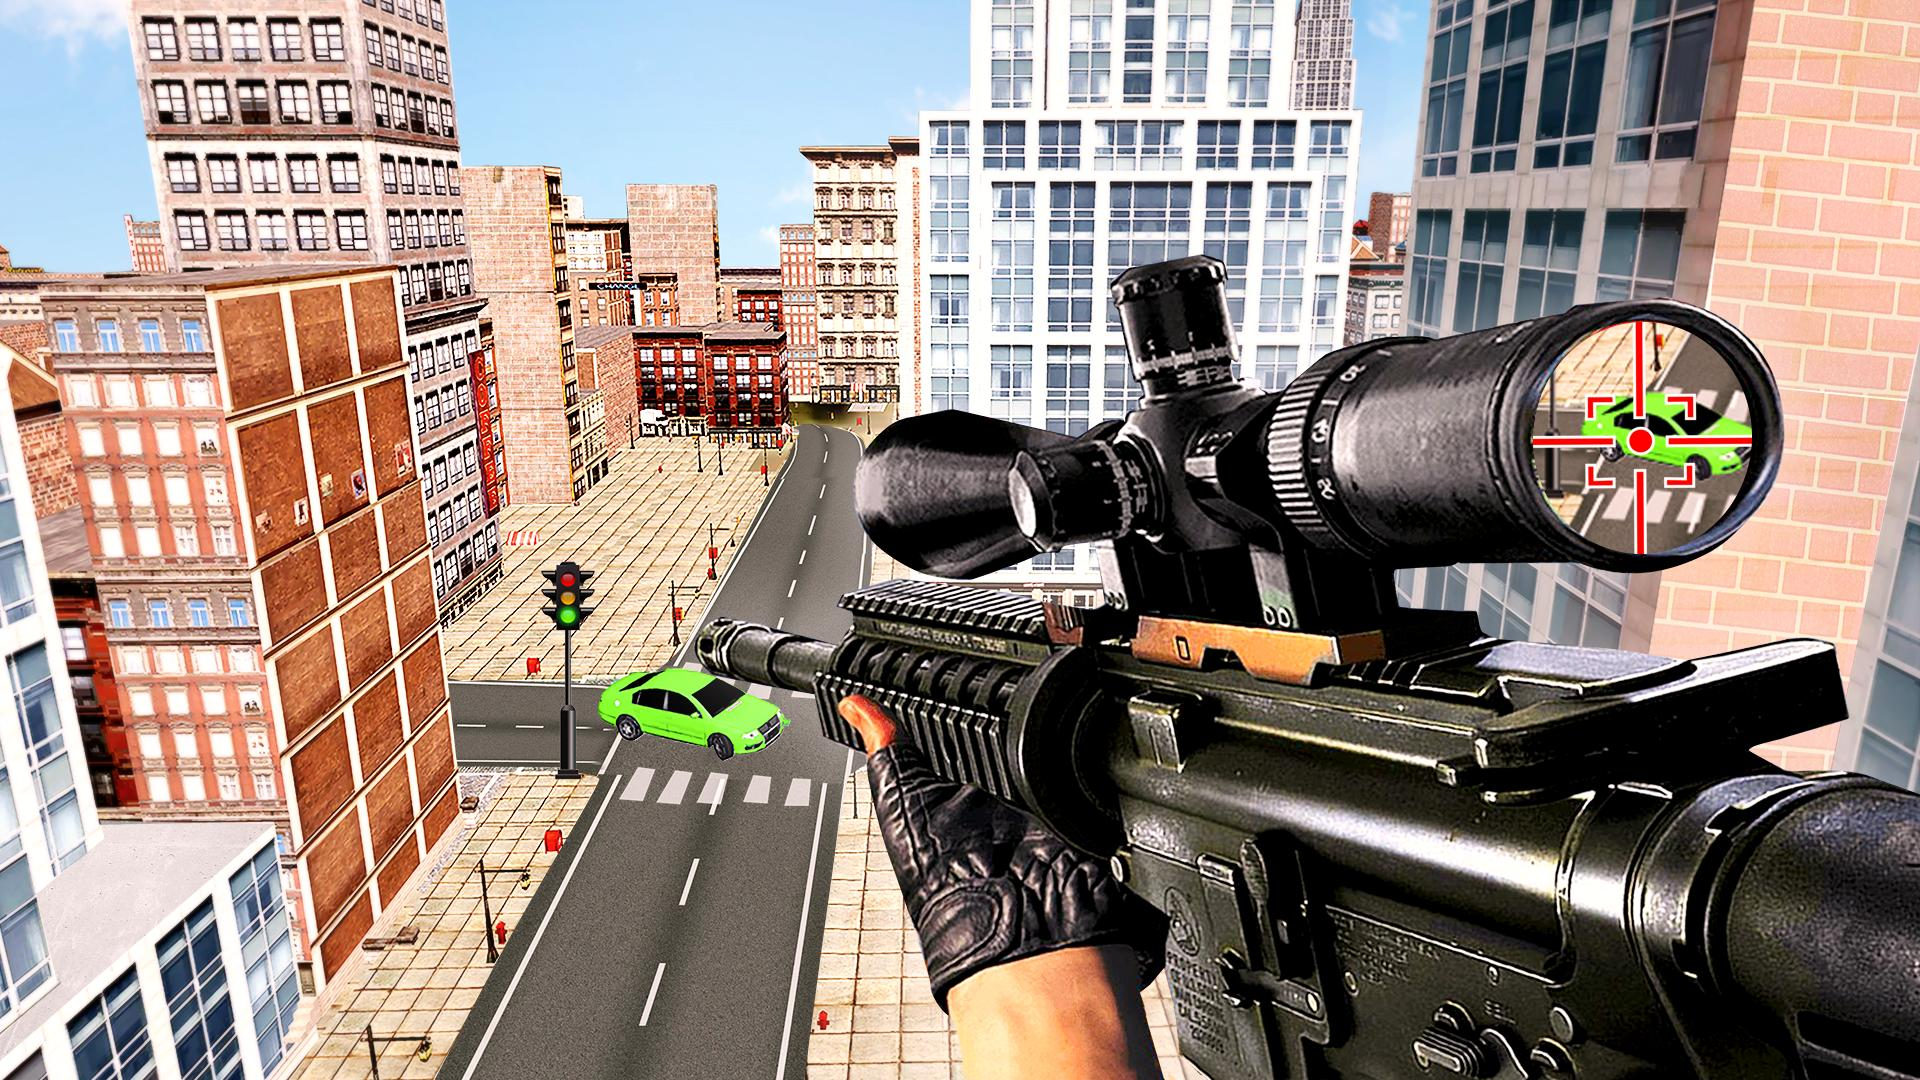 New Sniper 3d Shooting 2019 - Free Sniper Games 1.0 Screenshot 9